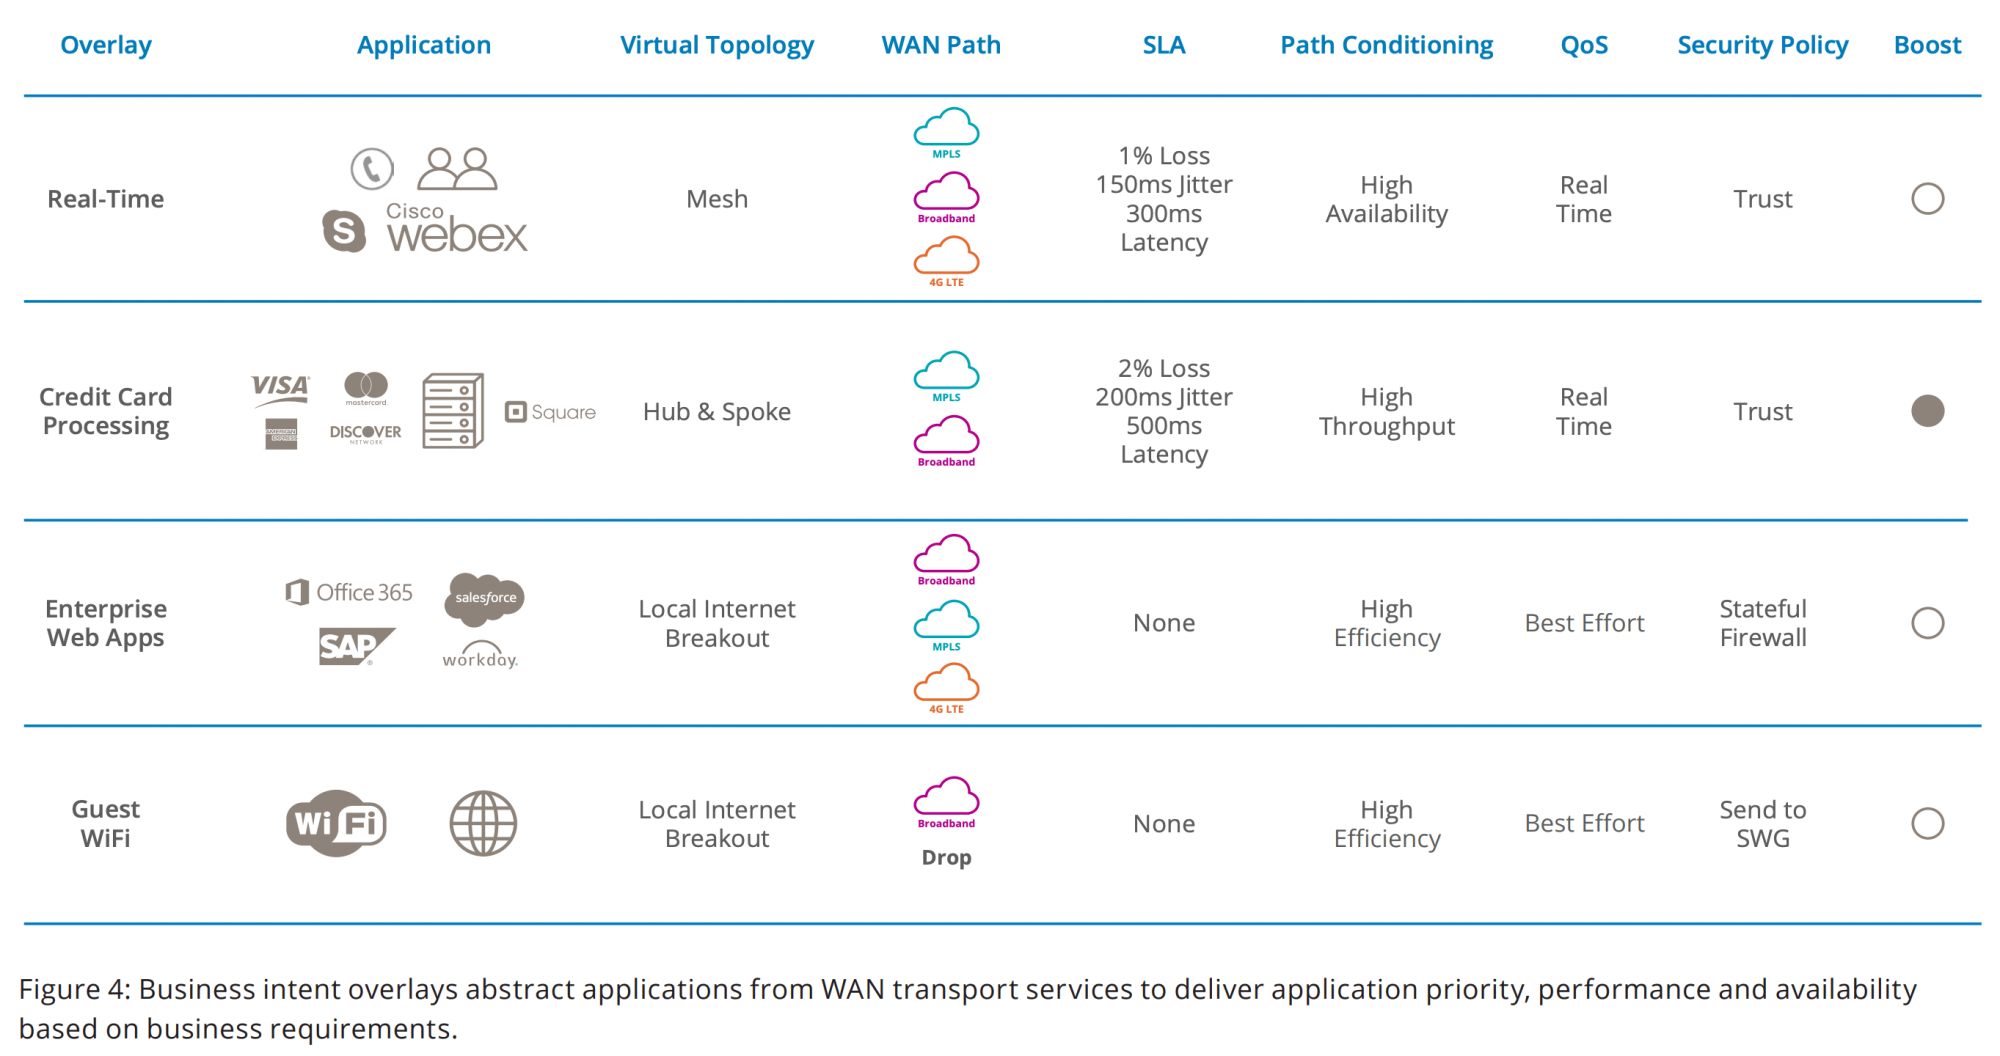 Figure 4: Business intent overlays abstract applications from WAN transport services to deliver application priority, performance and availability based on business requirements.